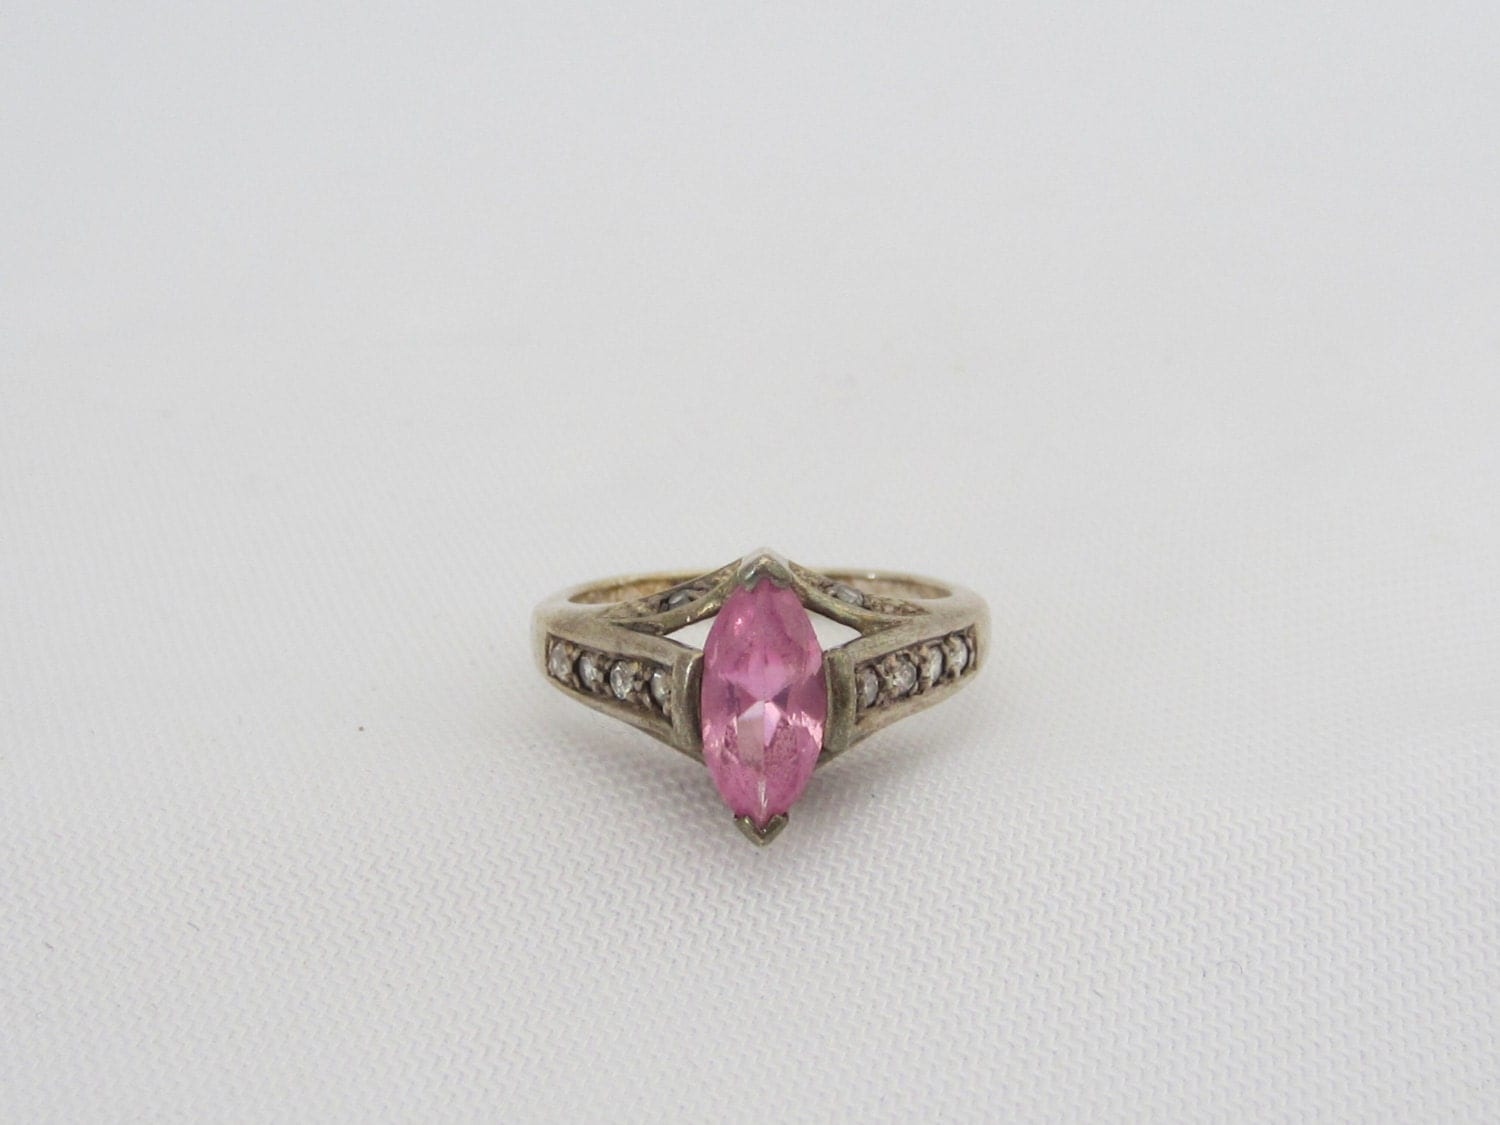 Vintage Avon Sterling Silver Pink Amp White Topaz Ring Size 6 5